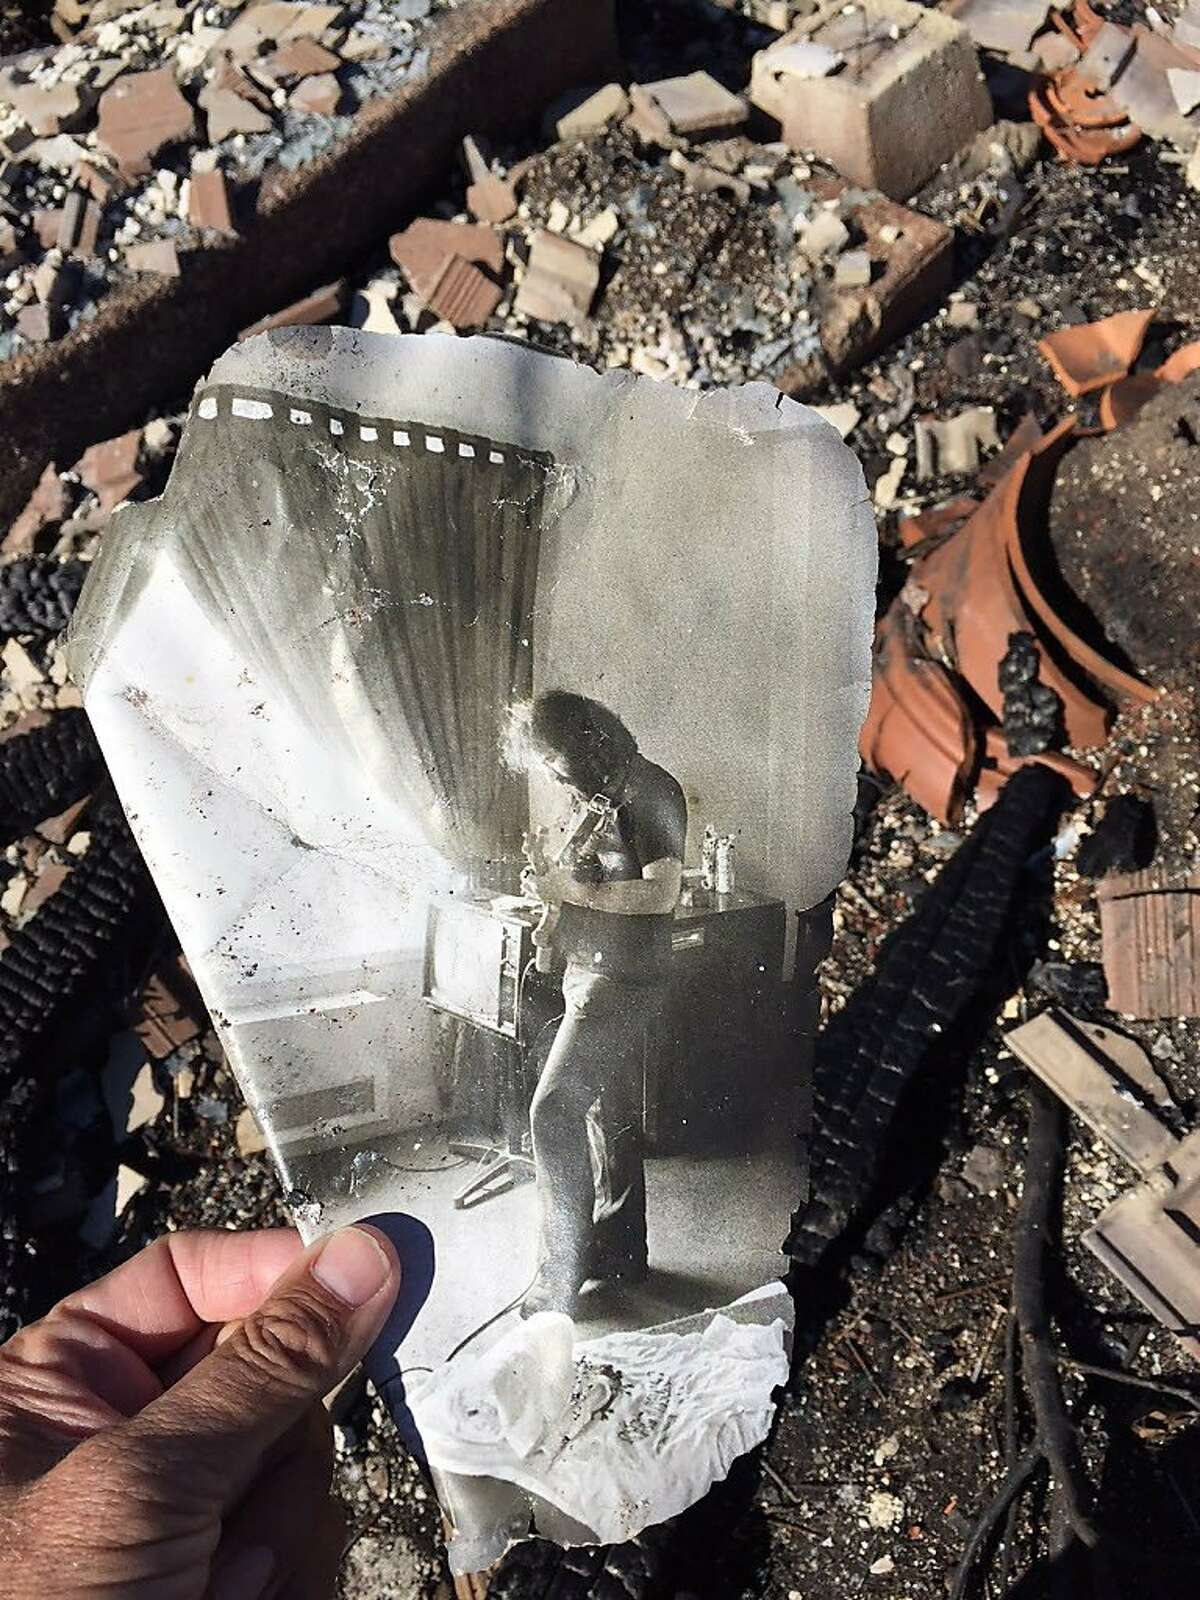 Mayacama head pro Ted Antonopoulos lost an extensive golf memorabilia collection when his Santa Rosa house burned down, but he found this Jerry Garcia photo.